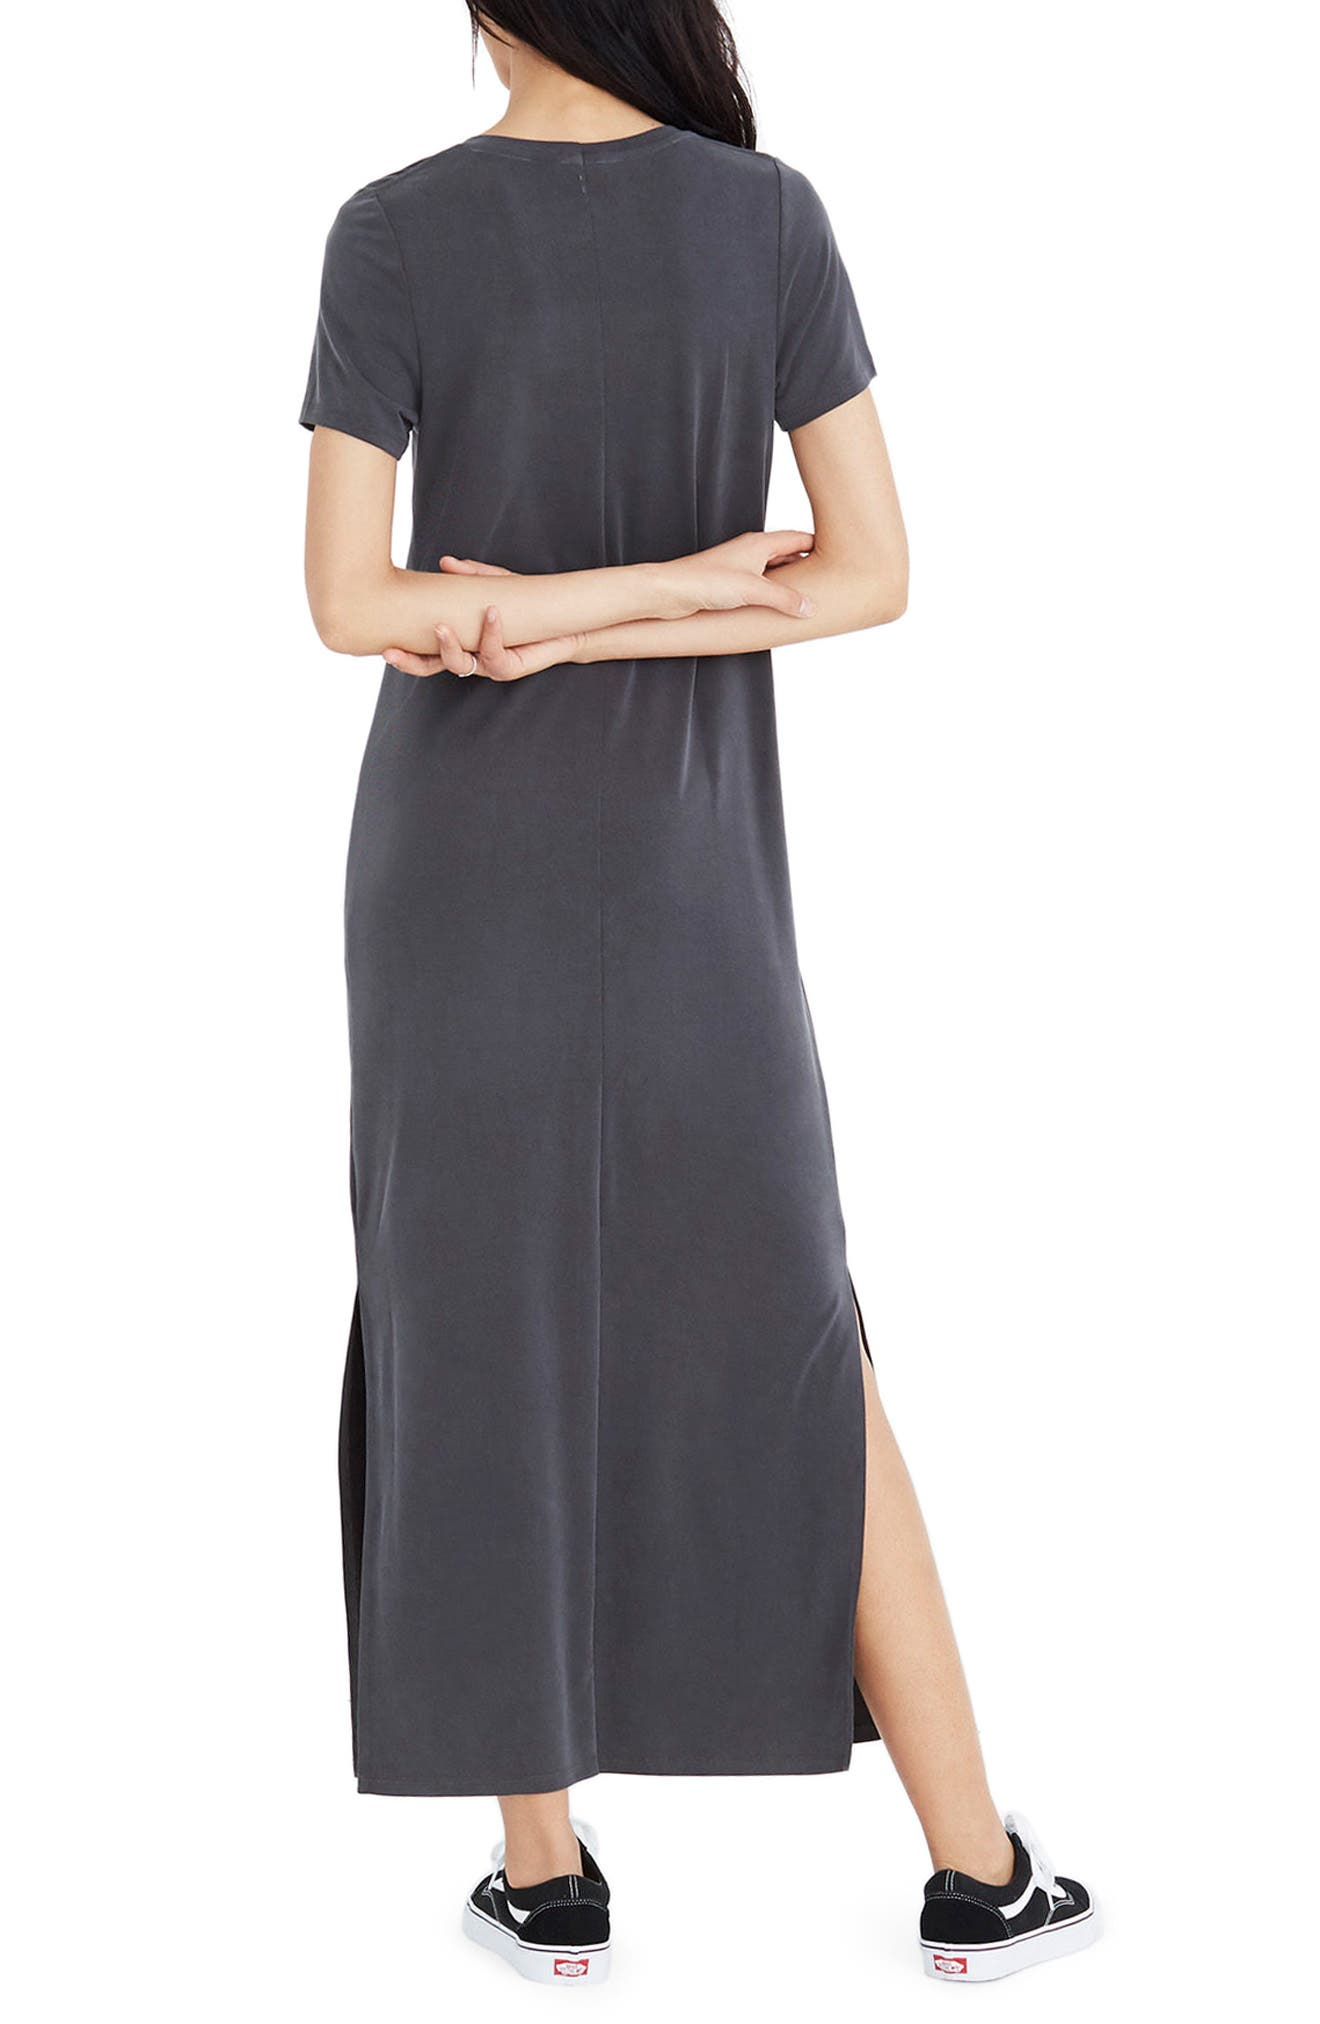 MADEWELL,                             Sandwashed Maxi T-Shirt Dress,                             Alternate thumbnail 2, color,                             020